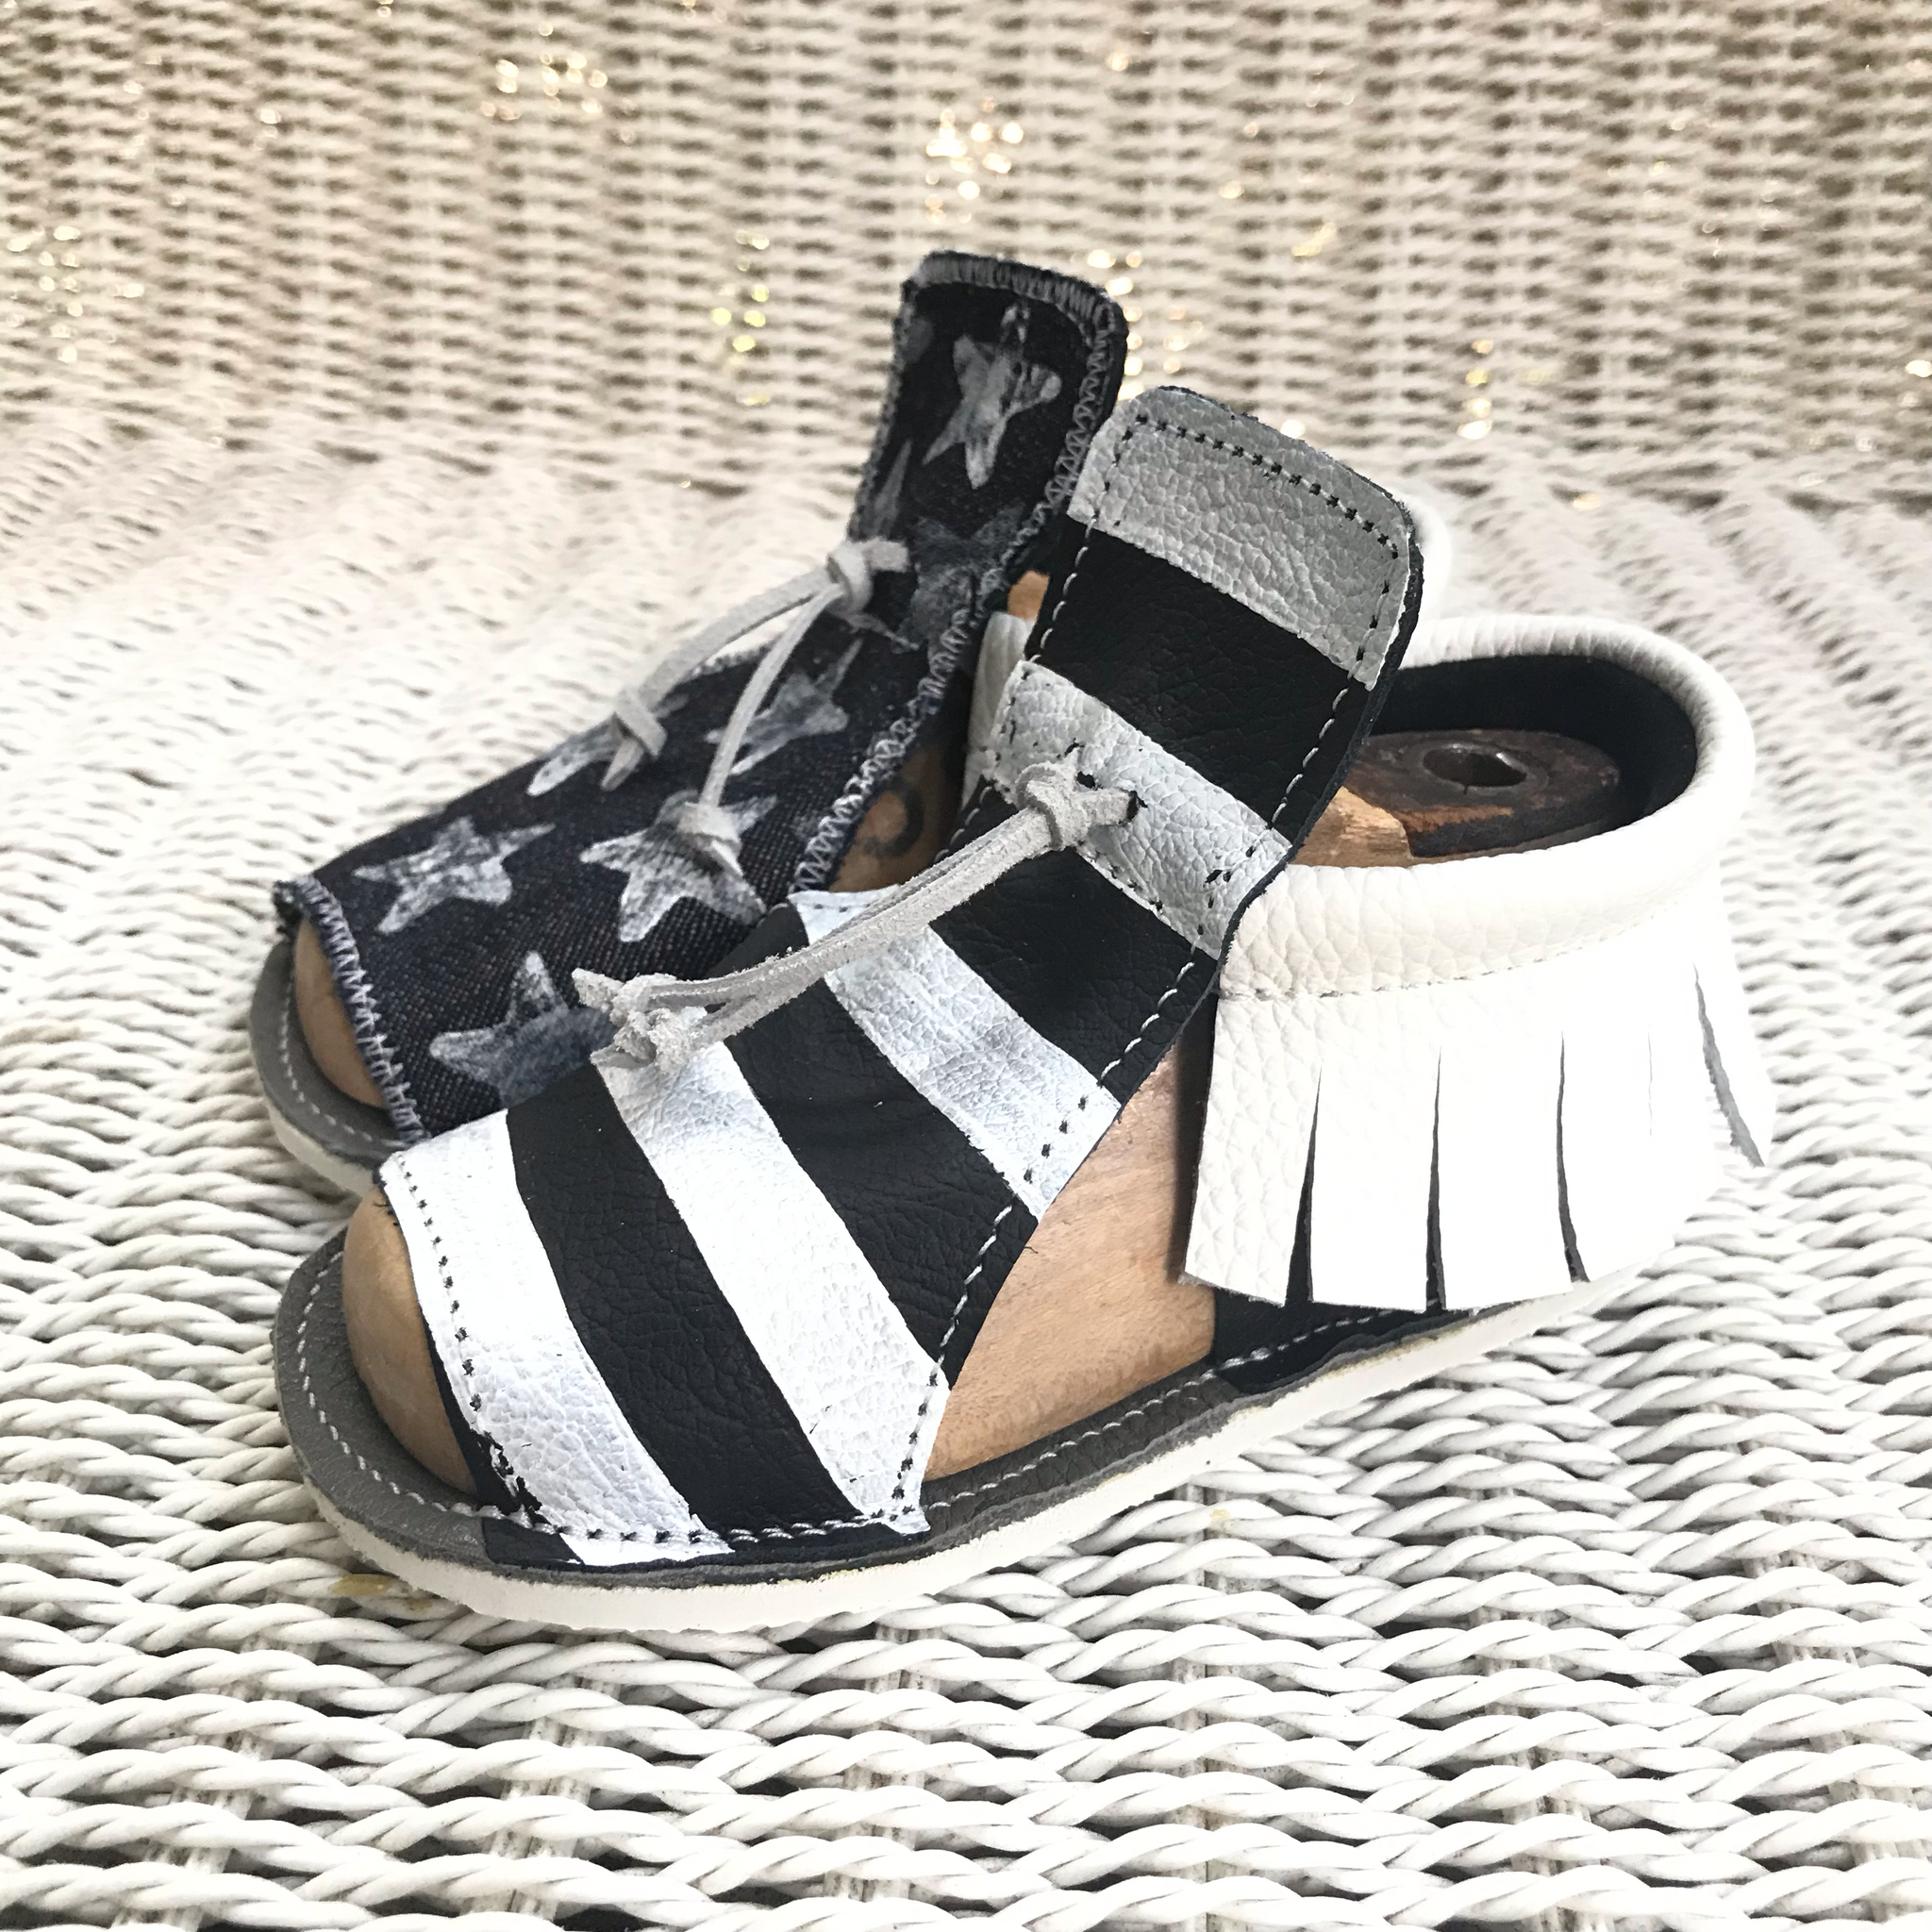 Monochrome Patriotic american flag unisex sandals with rubber sole